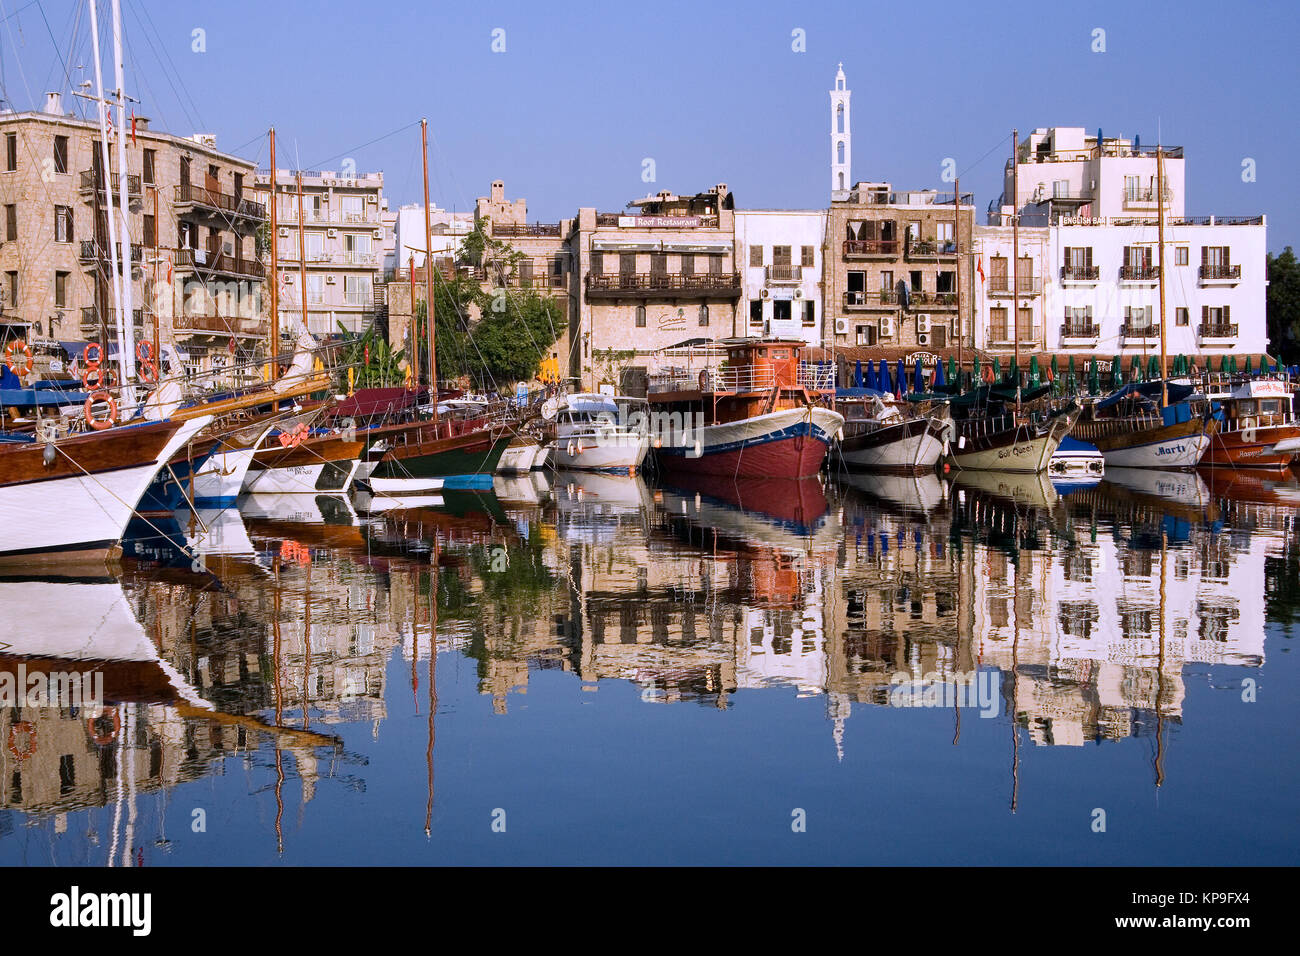 Kyrenia Harbor in the early morning. The Turkish Republic of Northern Cyprus. - Stock Image